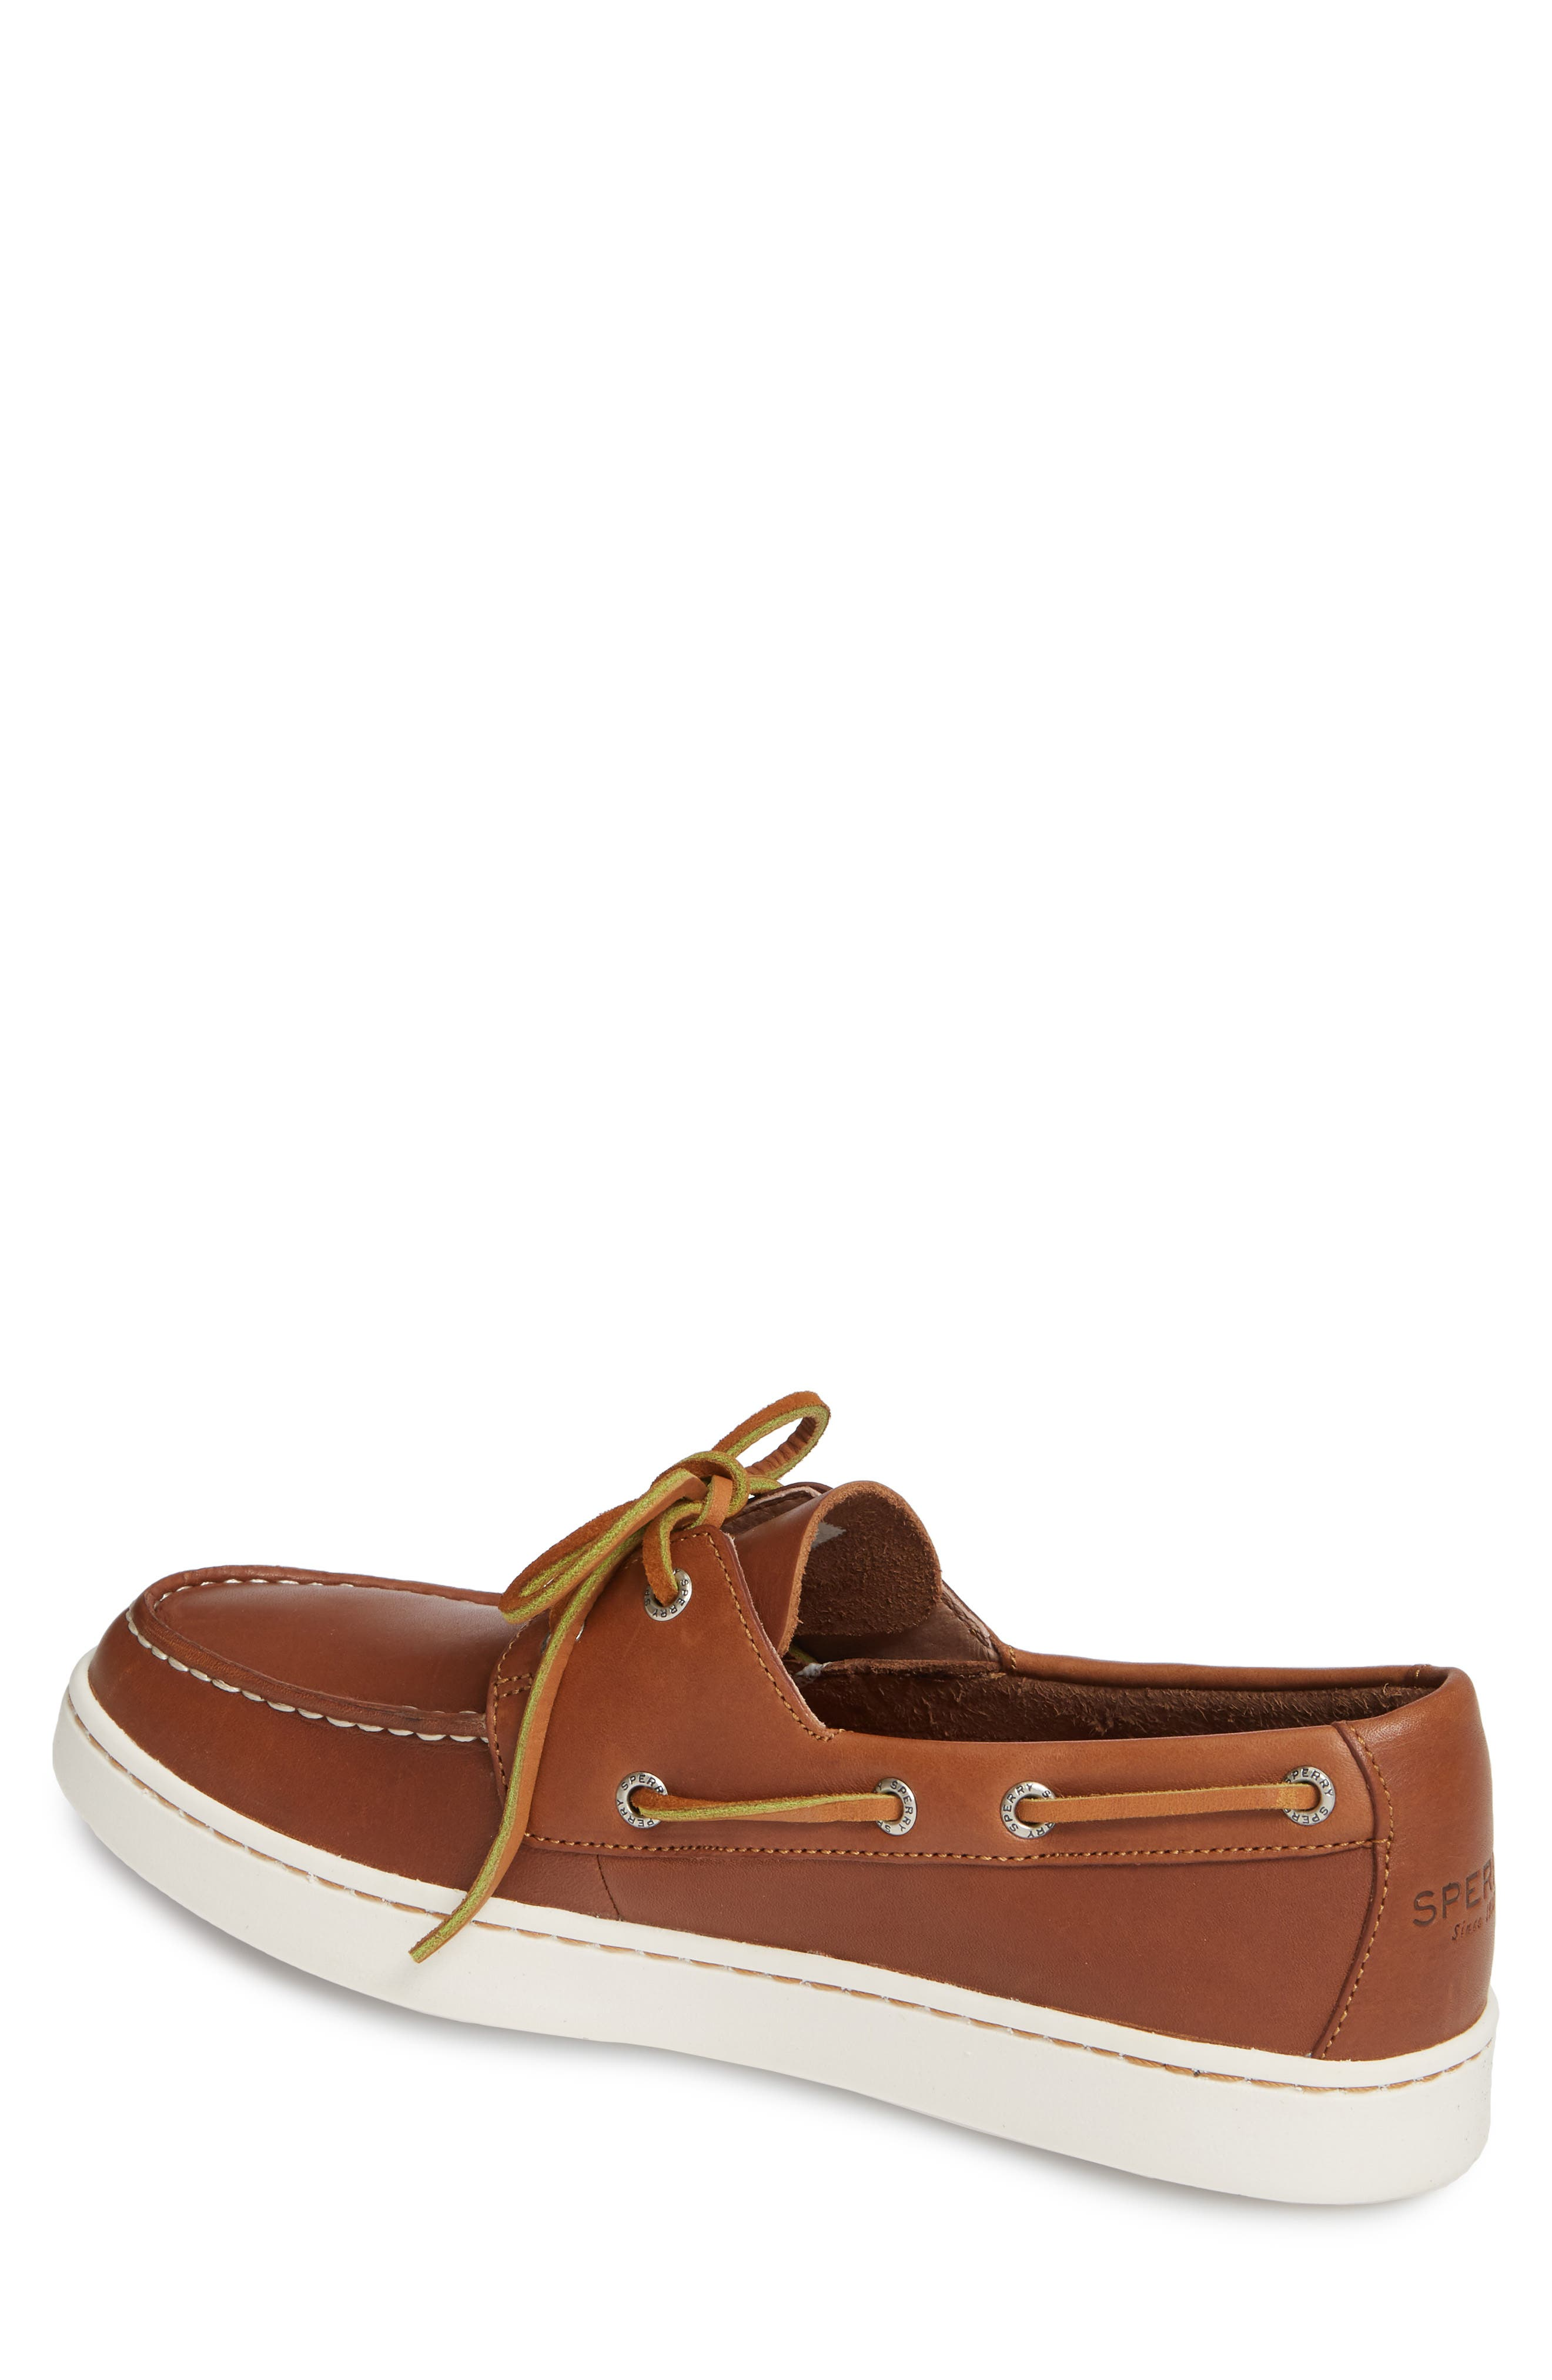 SPERRY, Cup Boat Shoe, Alternate thumbnail 2, color, TAN